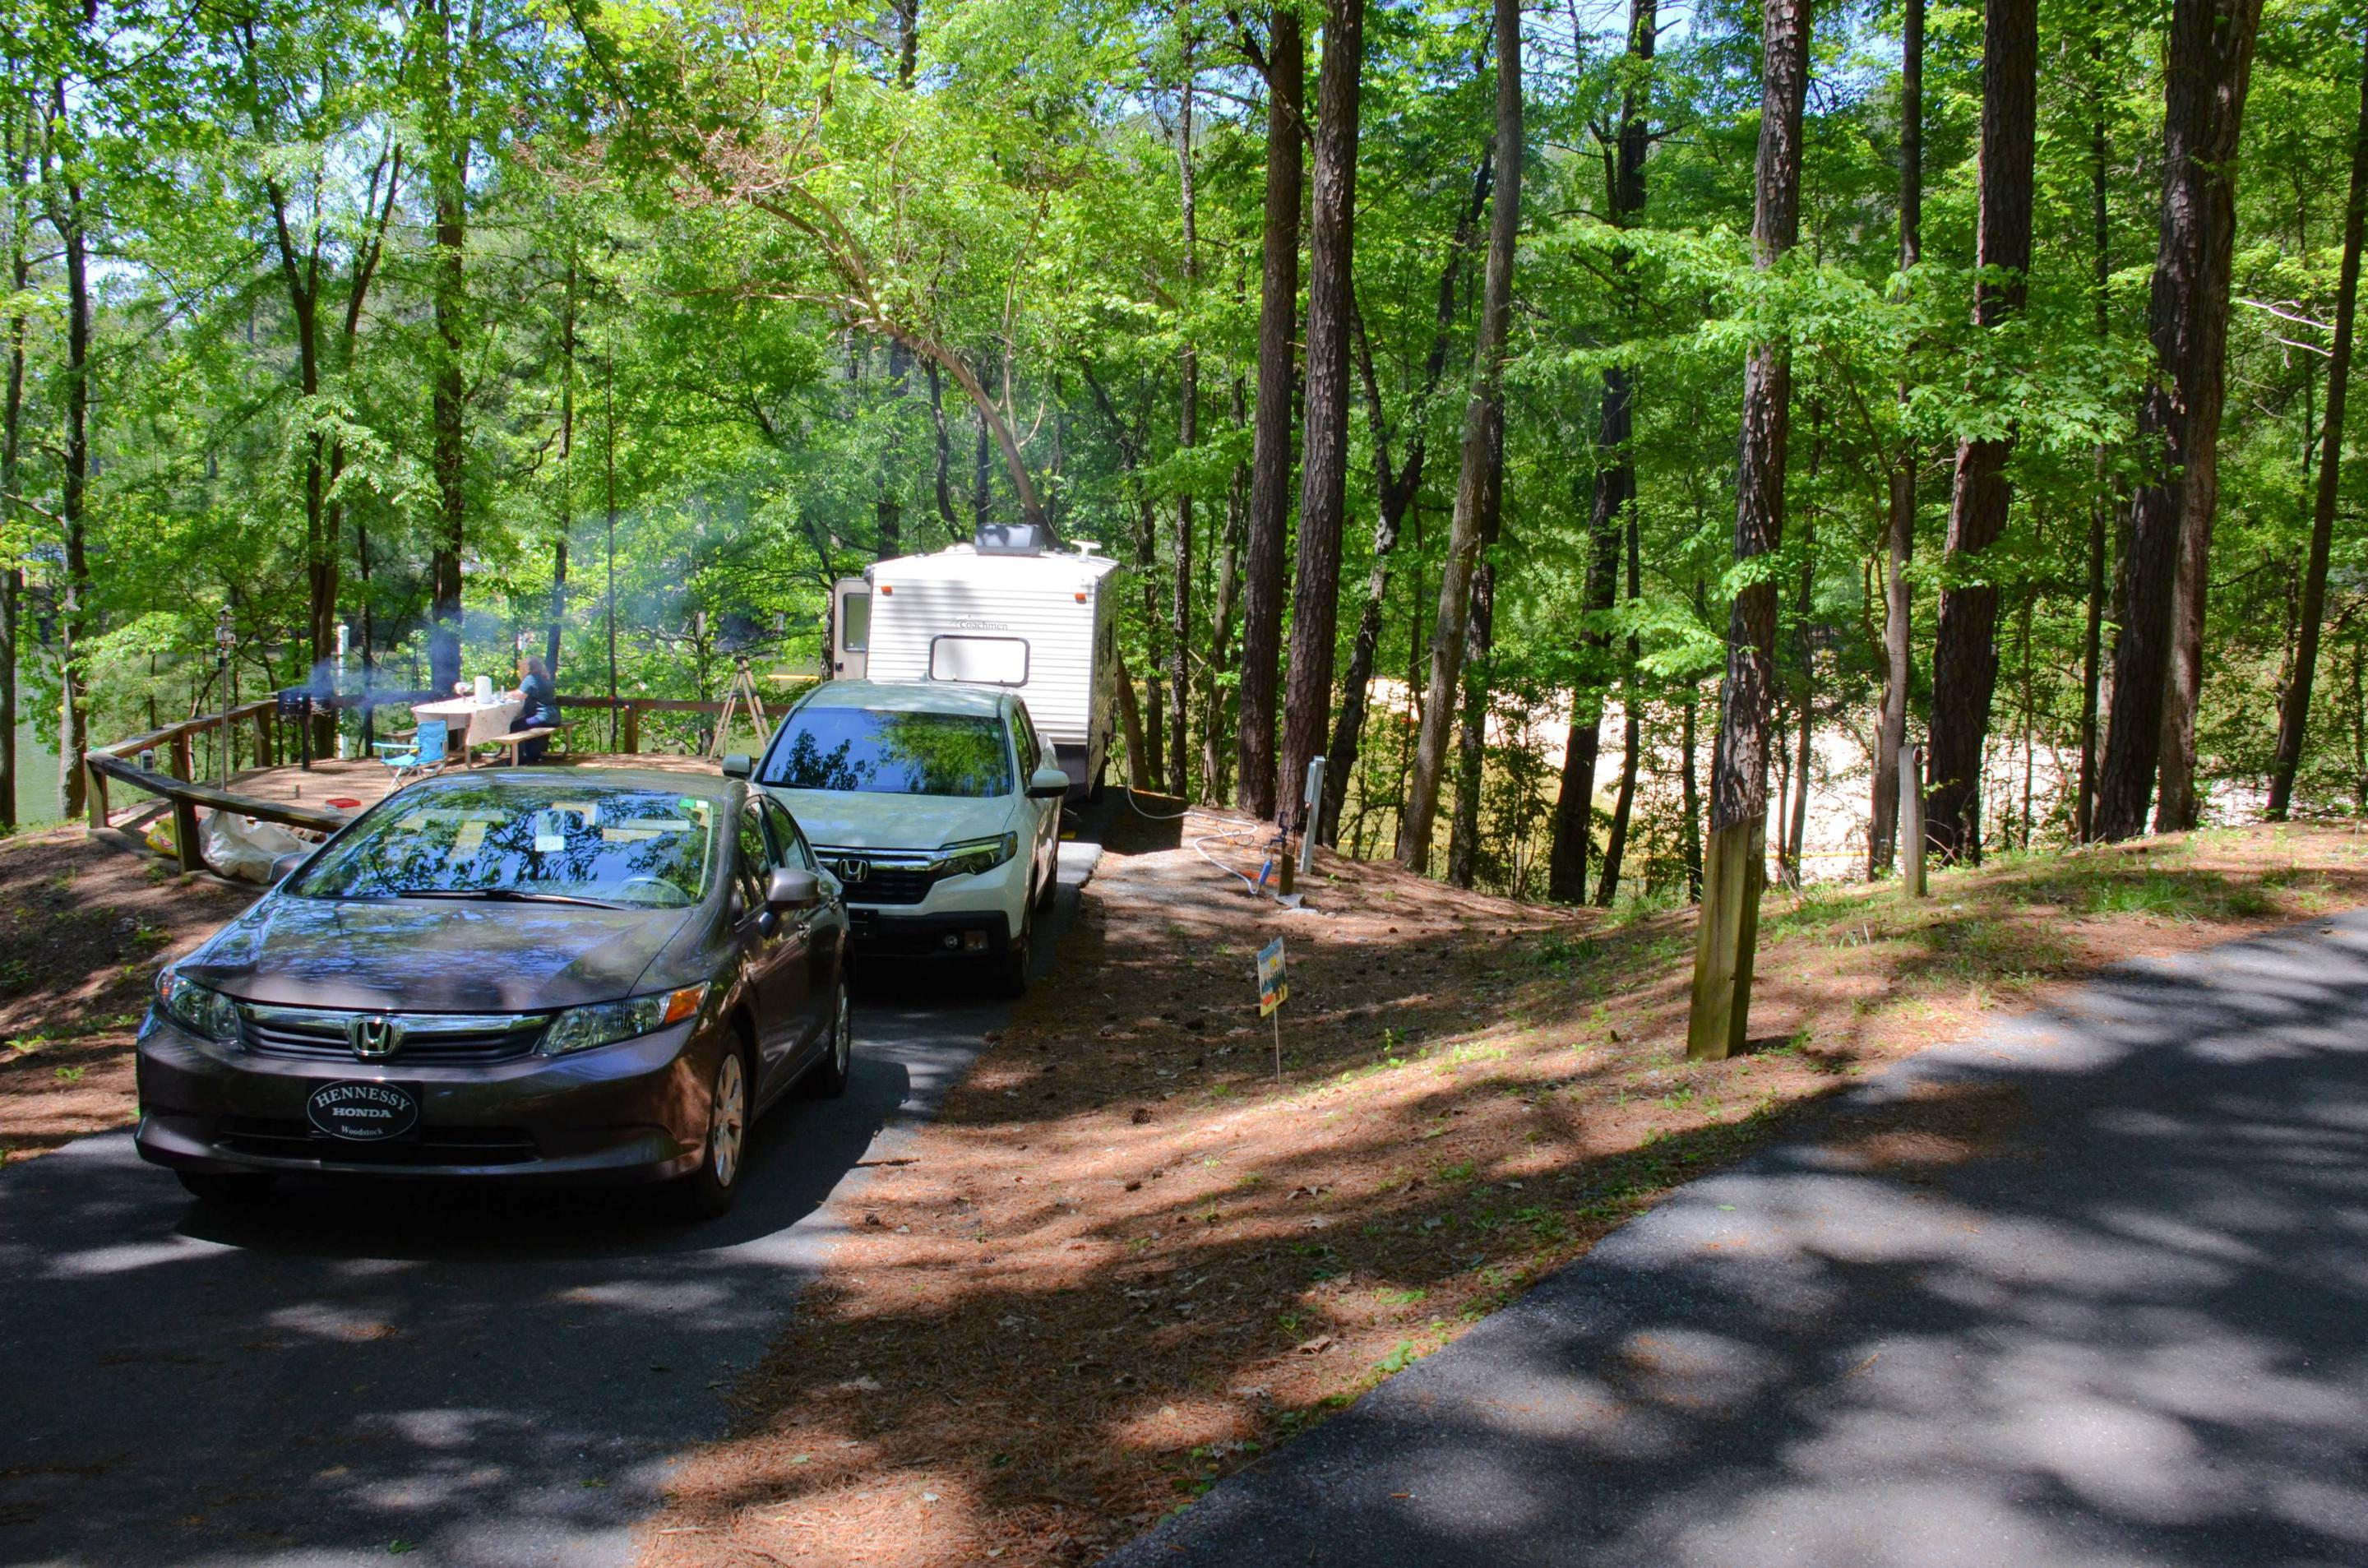 Driveway entrance angle/slope, utilities-side clearance.McKinney Campground, campsite 119.